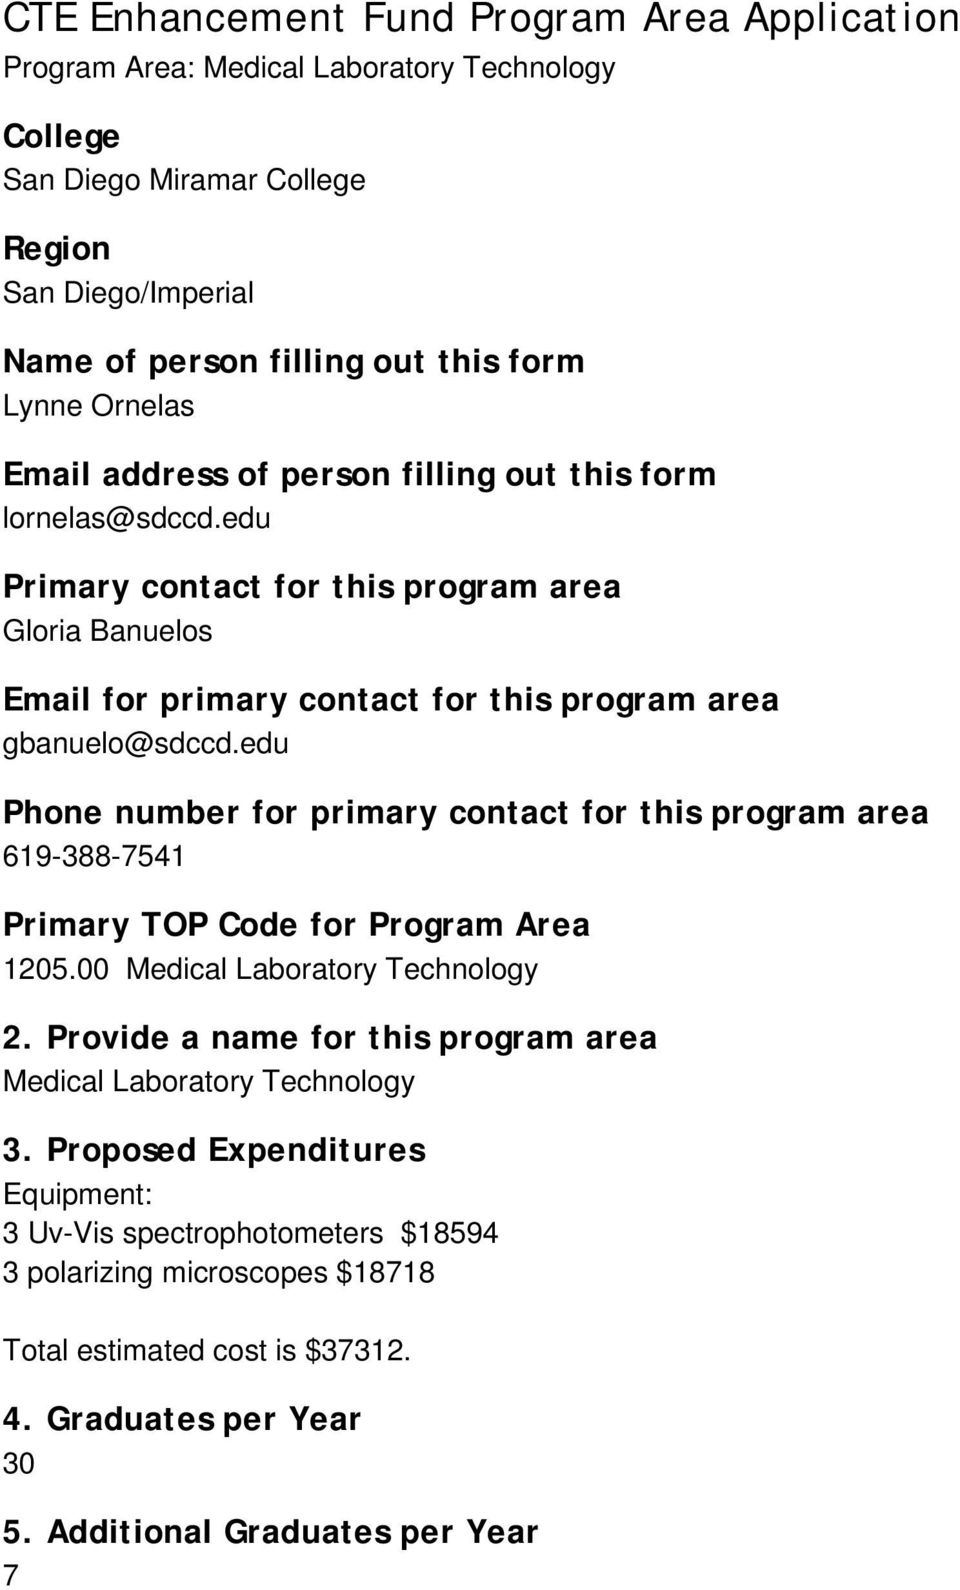 edu Phone number for primary contact for this program area 619-388-7541 Primary TOP Code for Program Area 1205.00 Medical Laboratory Technology 2.